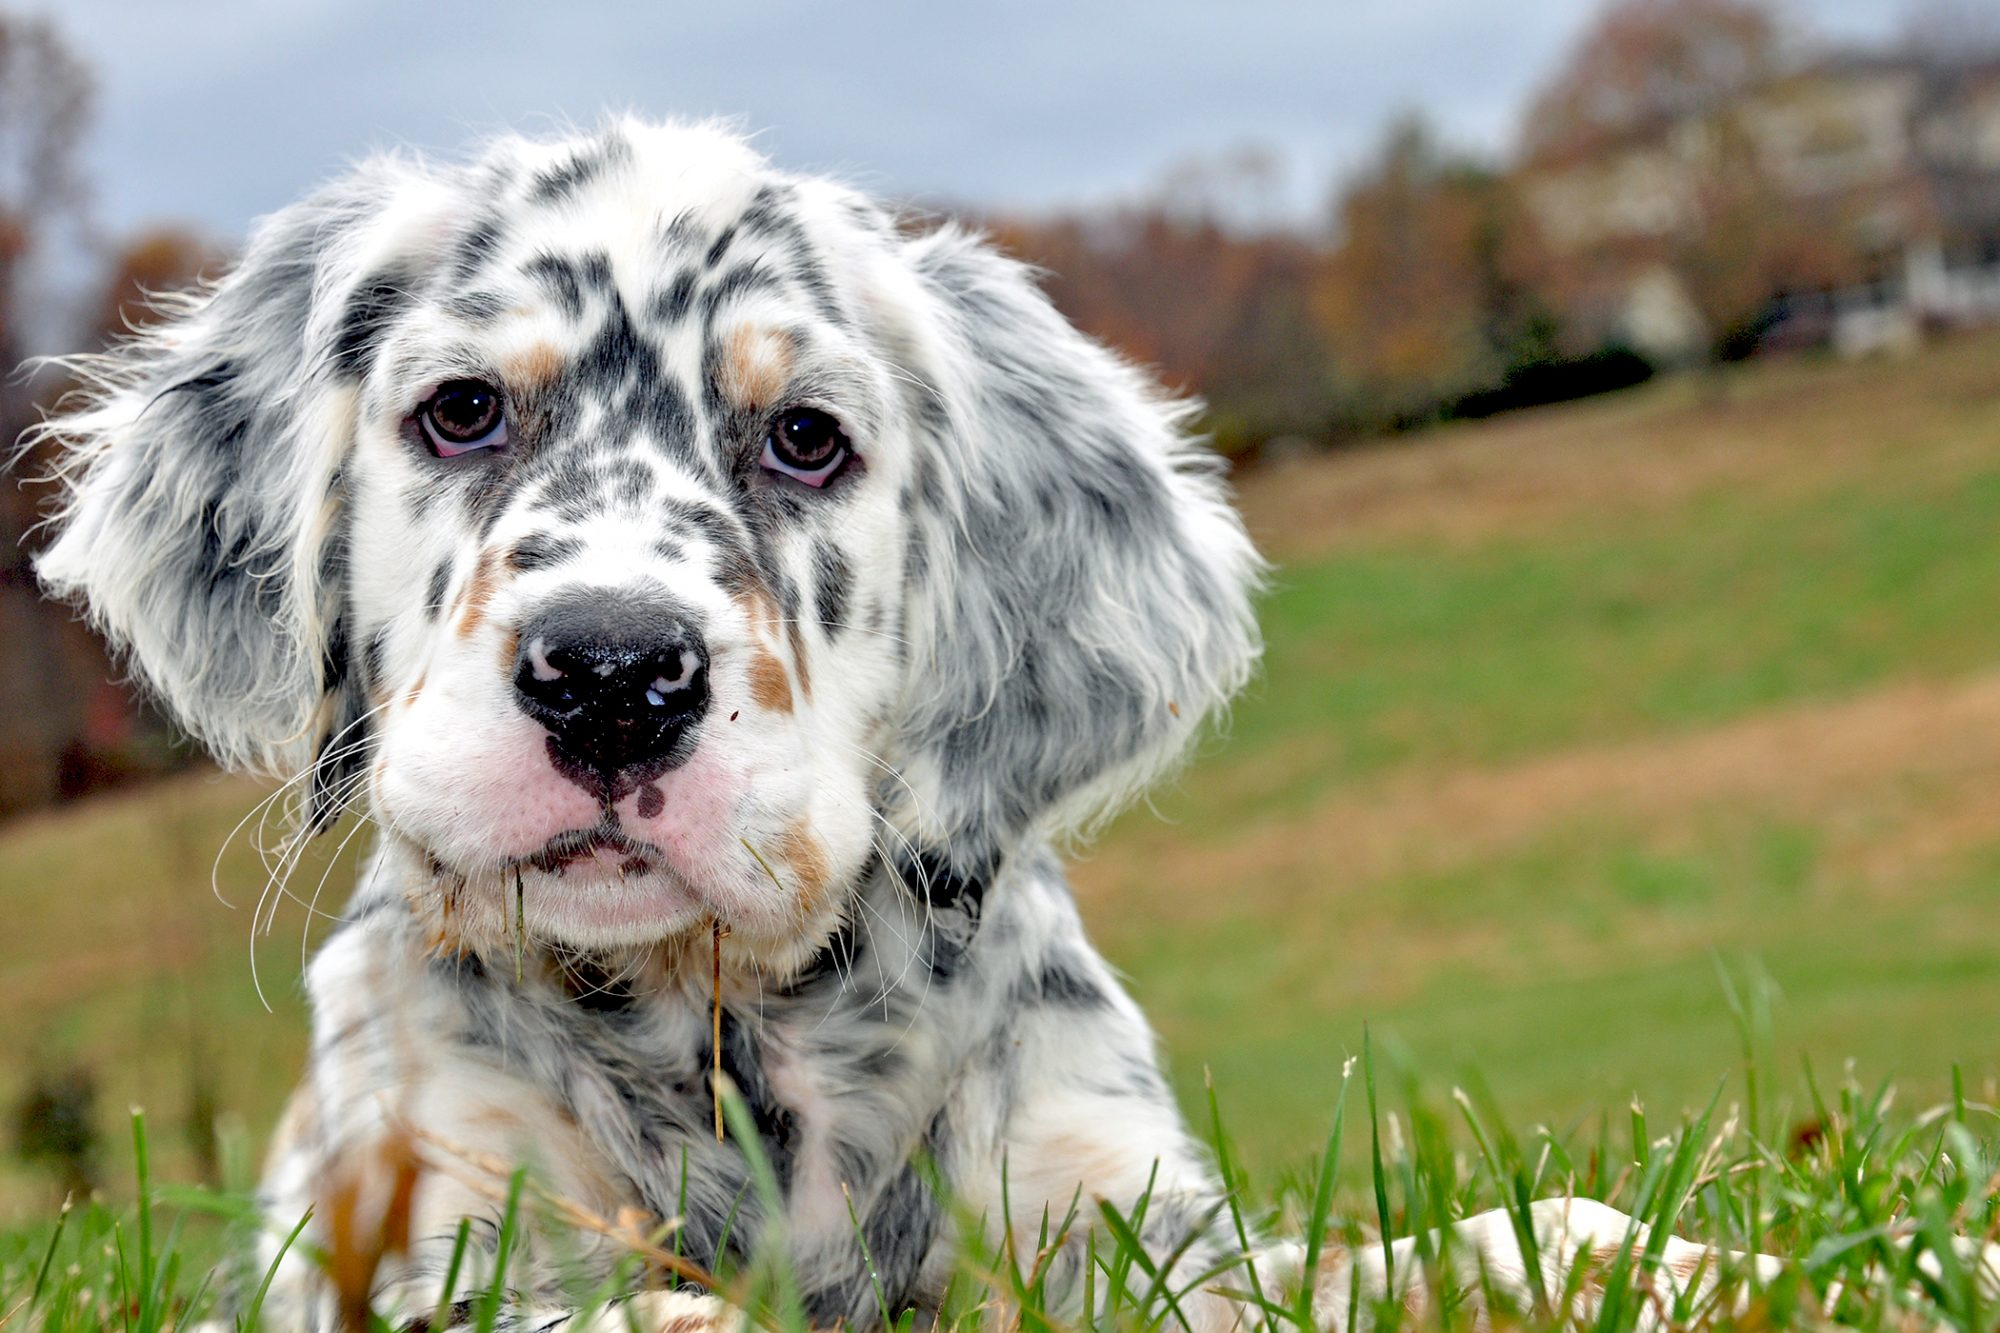 White, brown and grey spotted English Setter puppy lays in grass